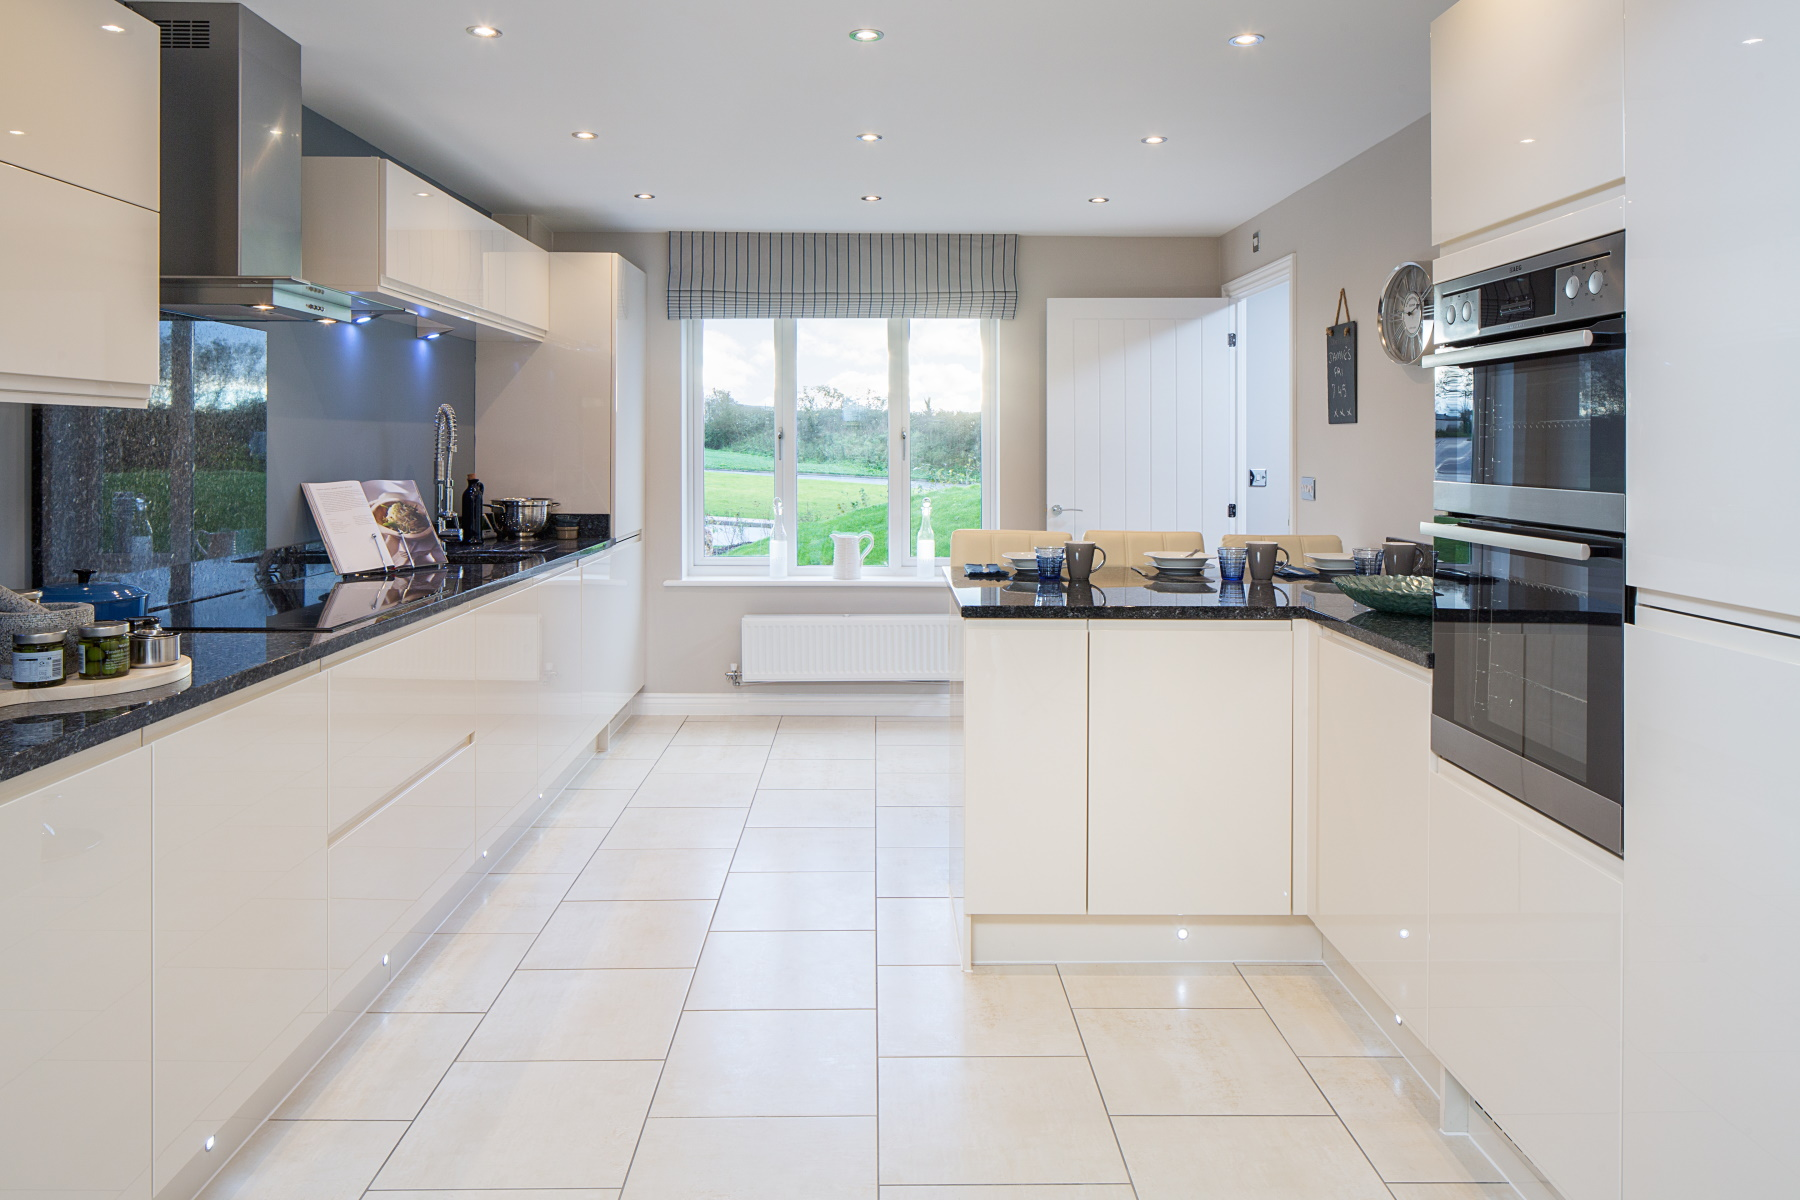 TW Exeter - Plumb Park - Weymouth example kitchen